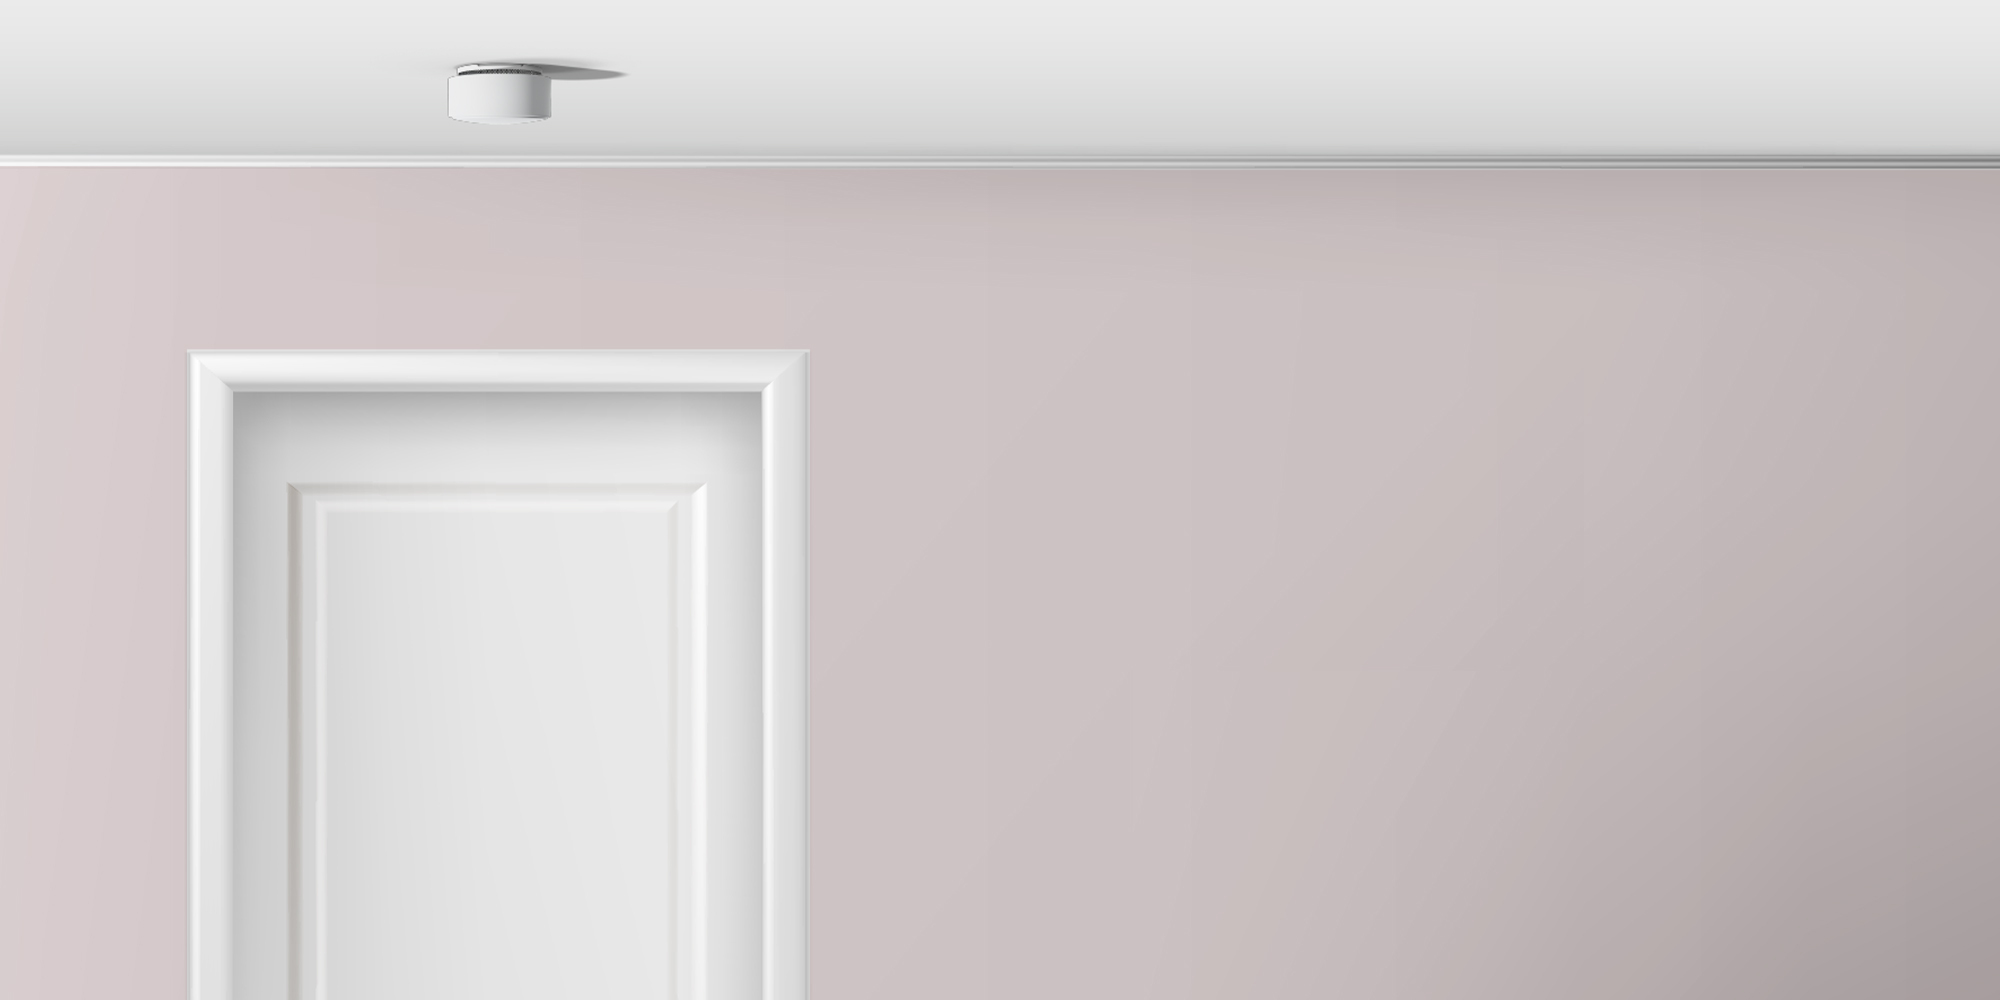 Home interior with Minut sensor on the ceiling